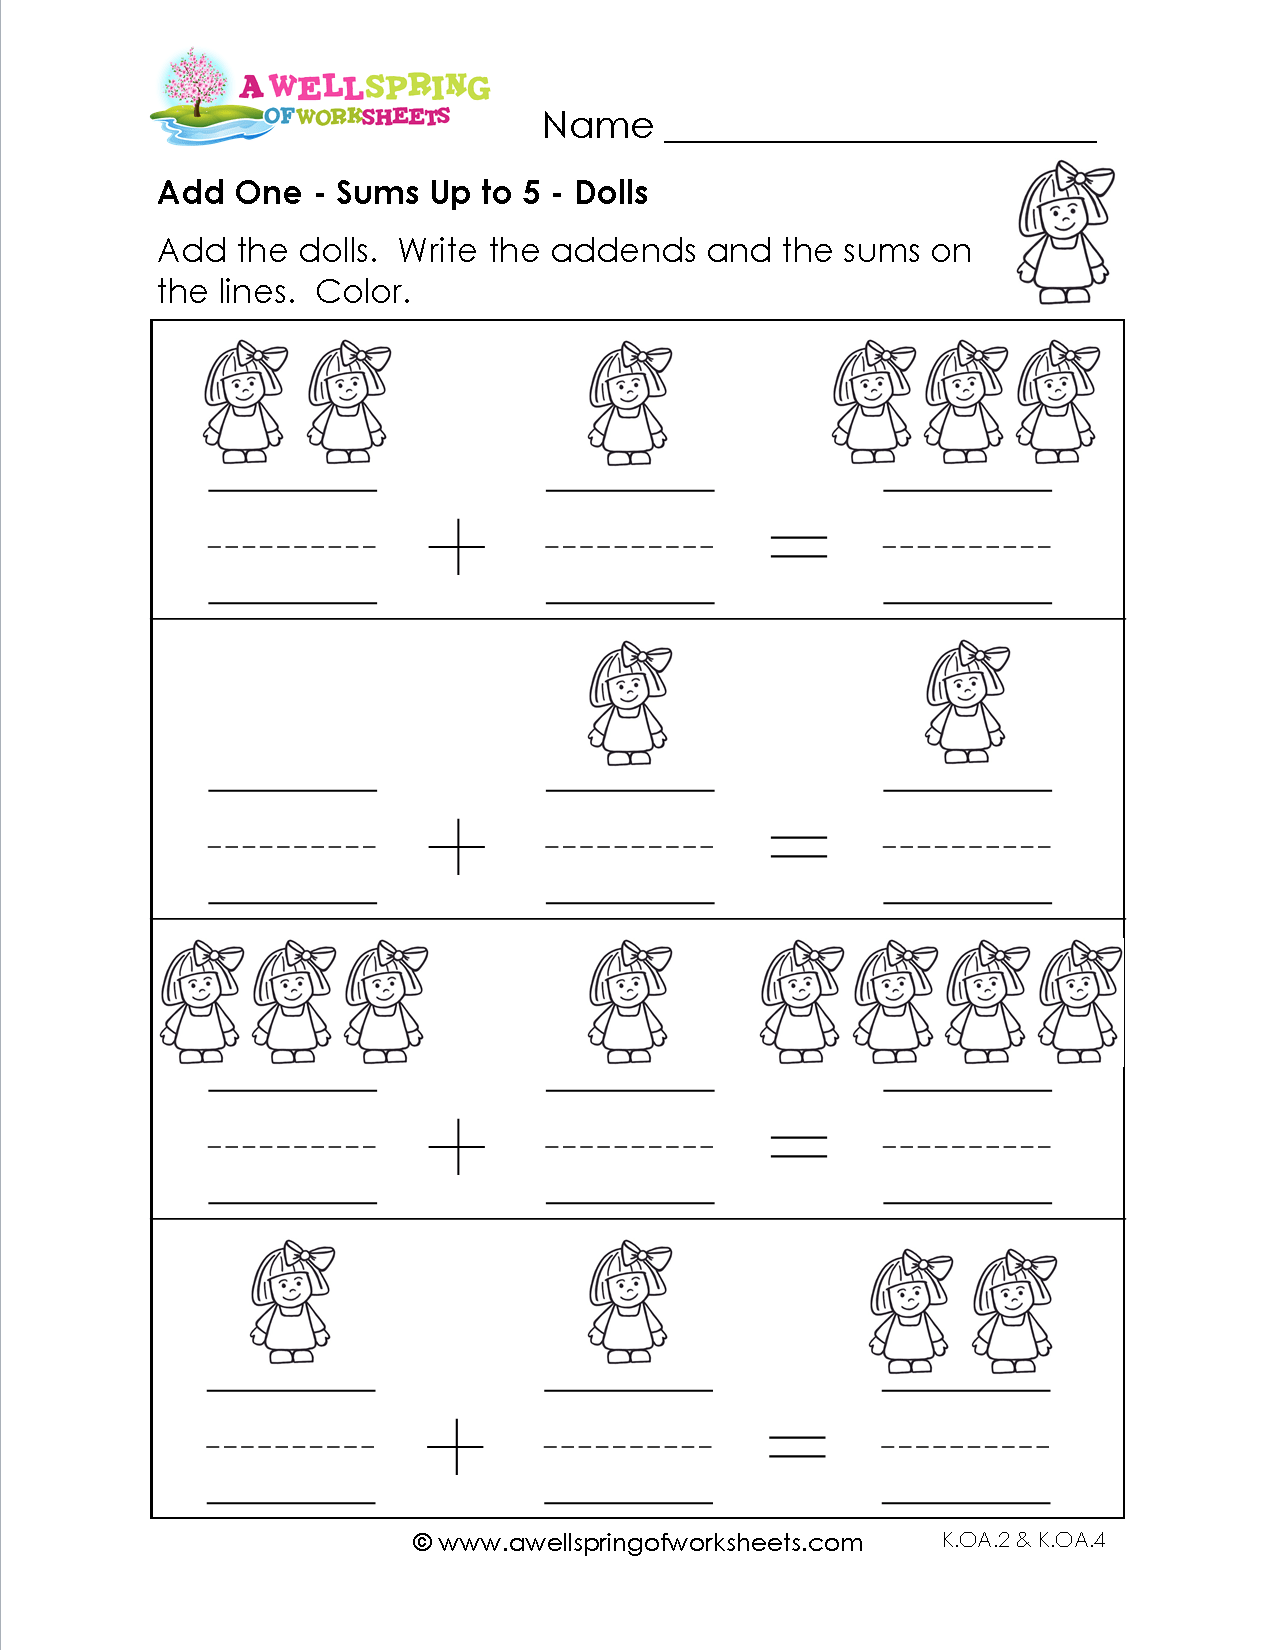 Adding 1 Worksheets